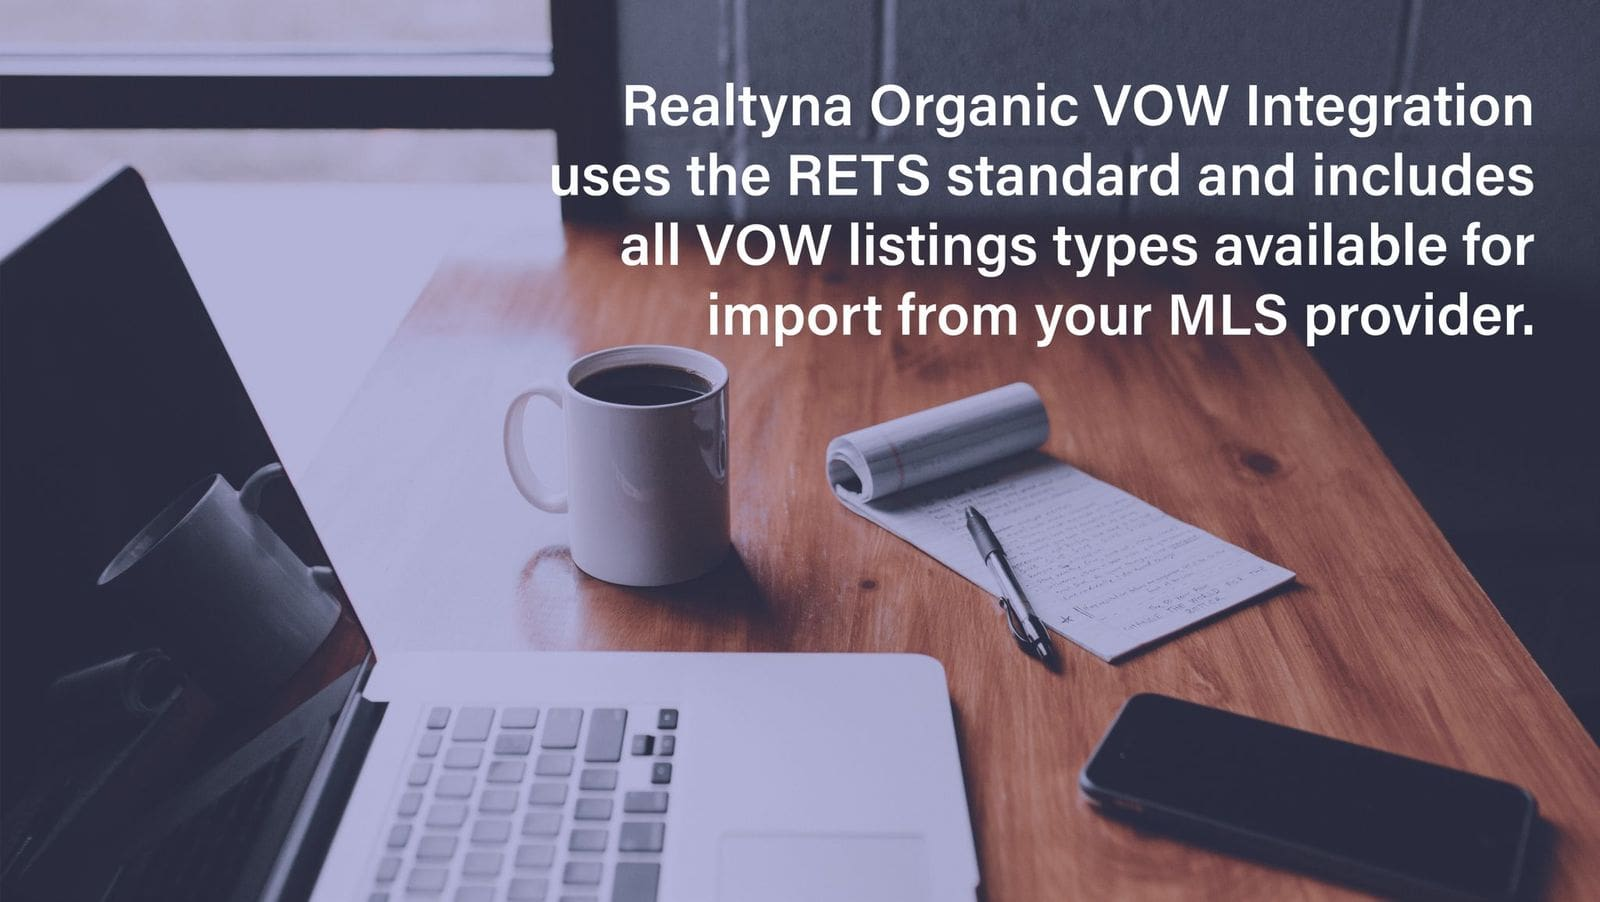 Realtyna's Organic Vow Integration